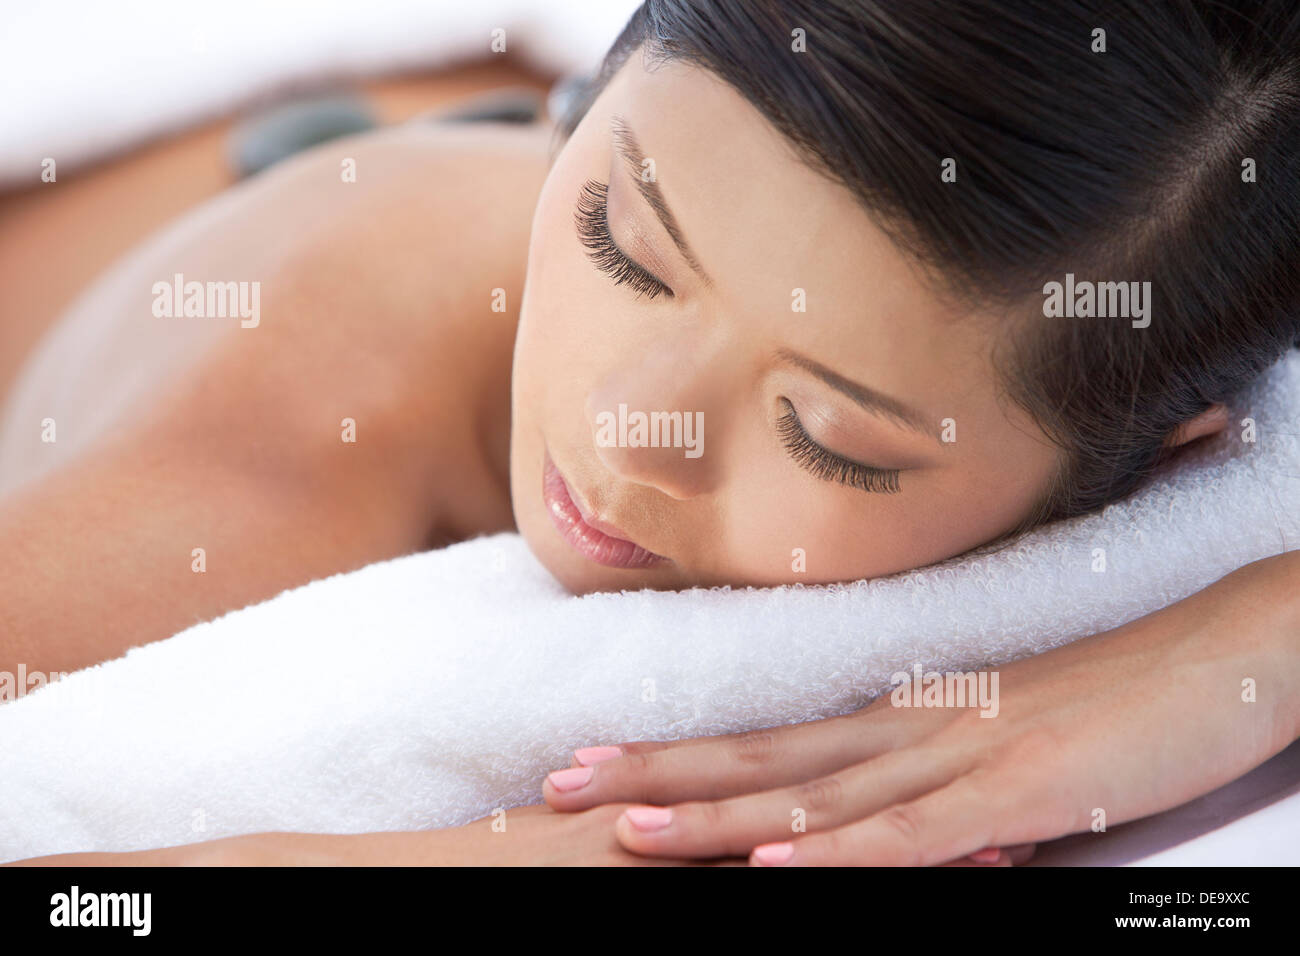 Massage asia hot